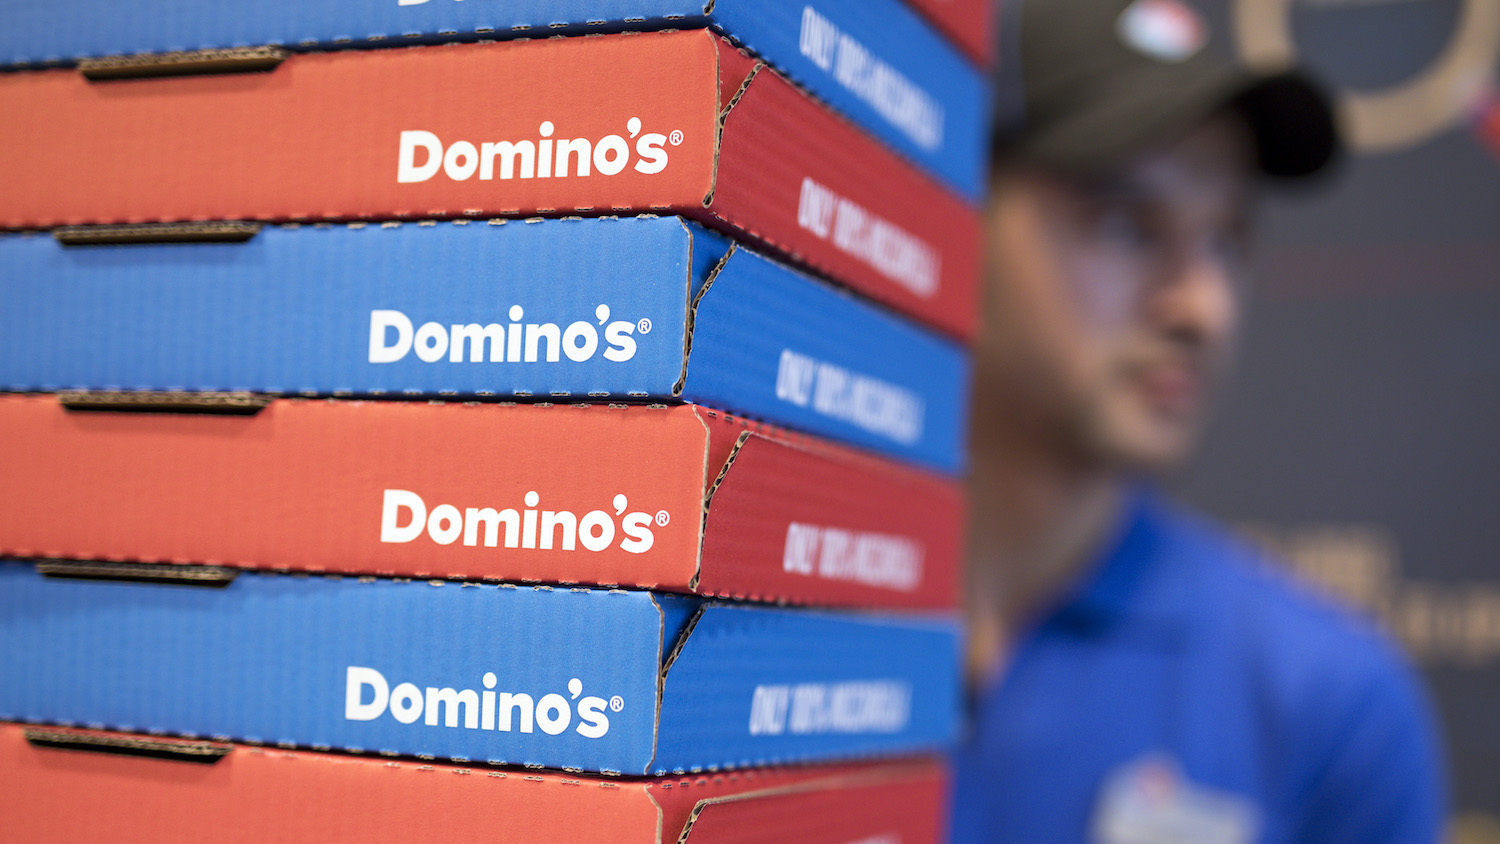 Domino's stock increase